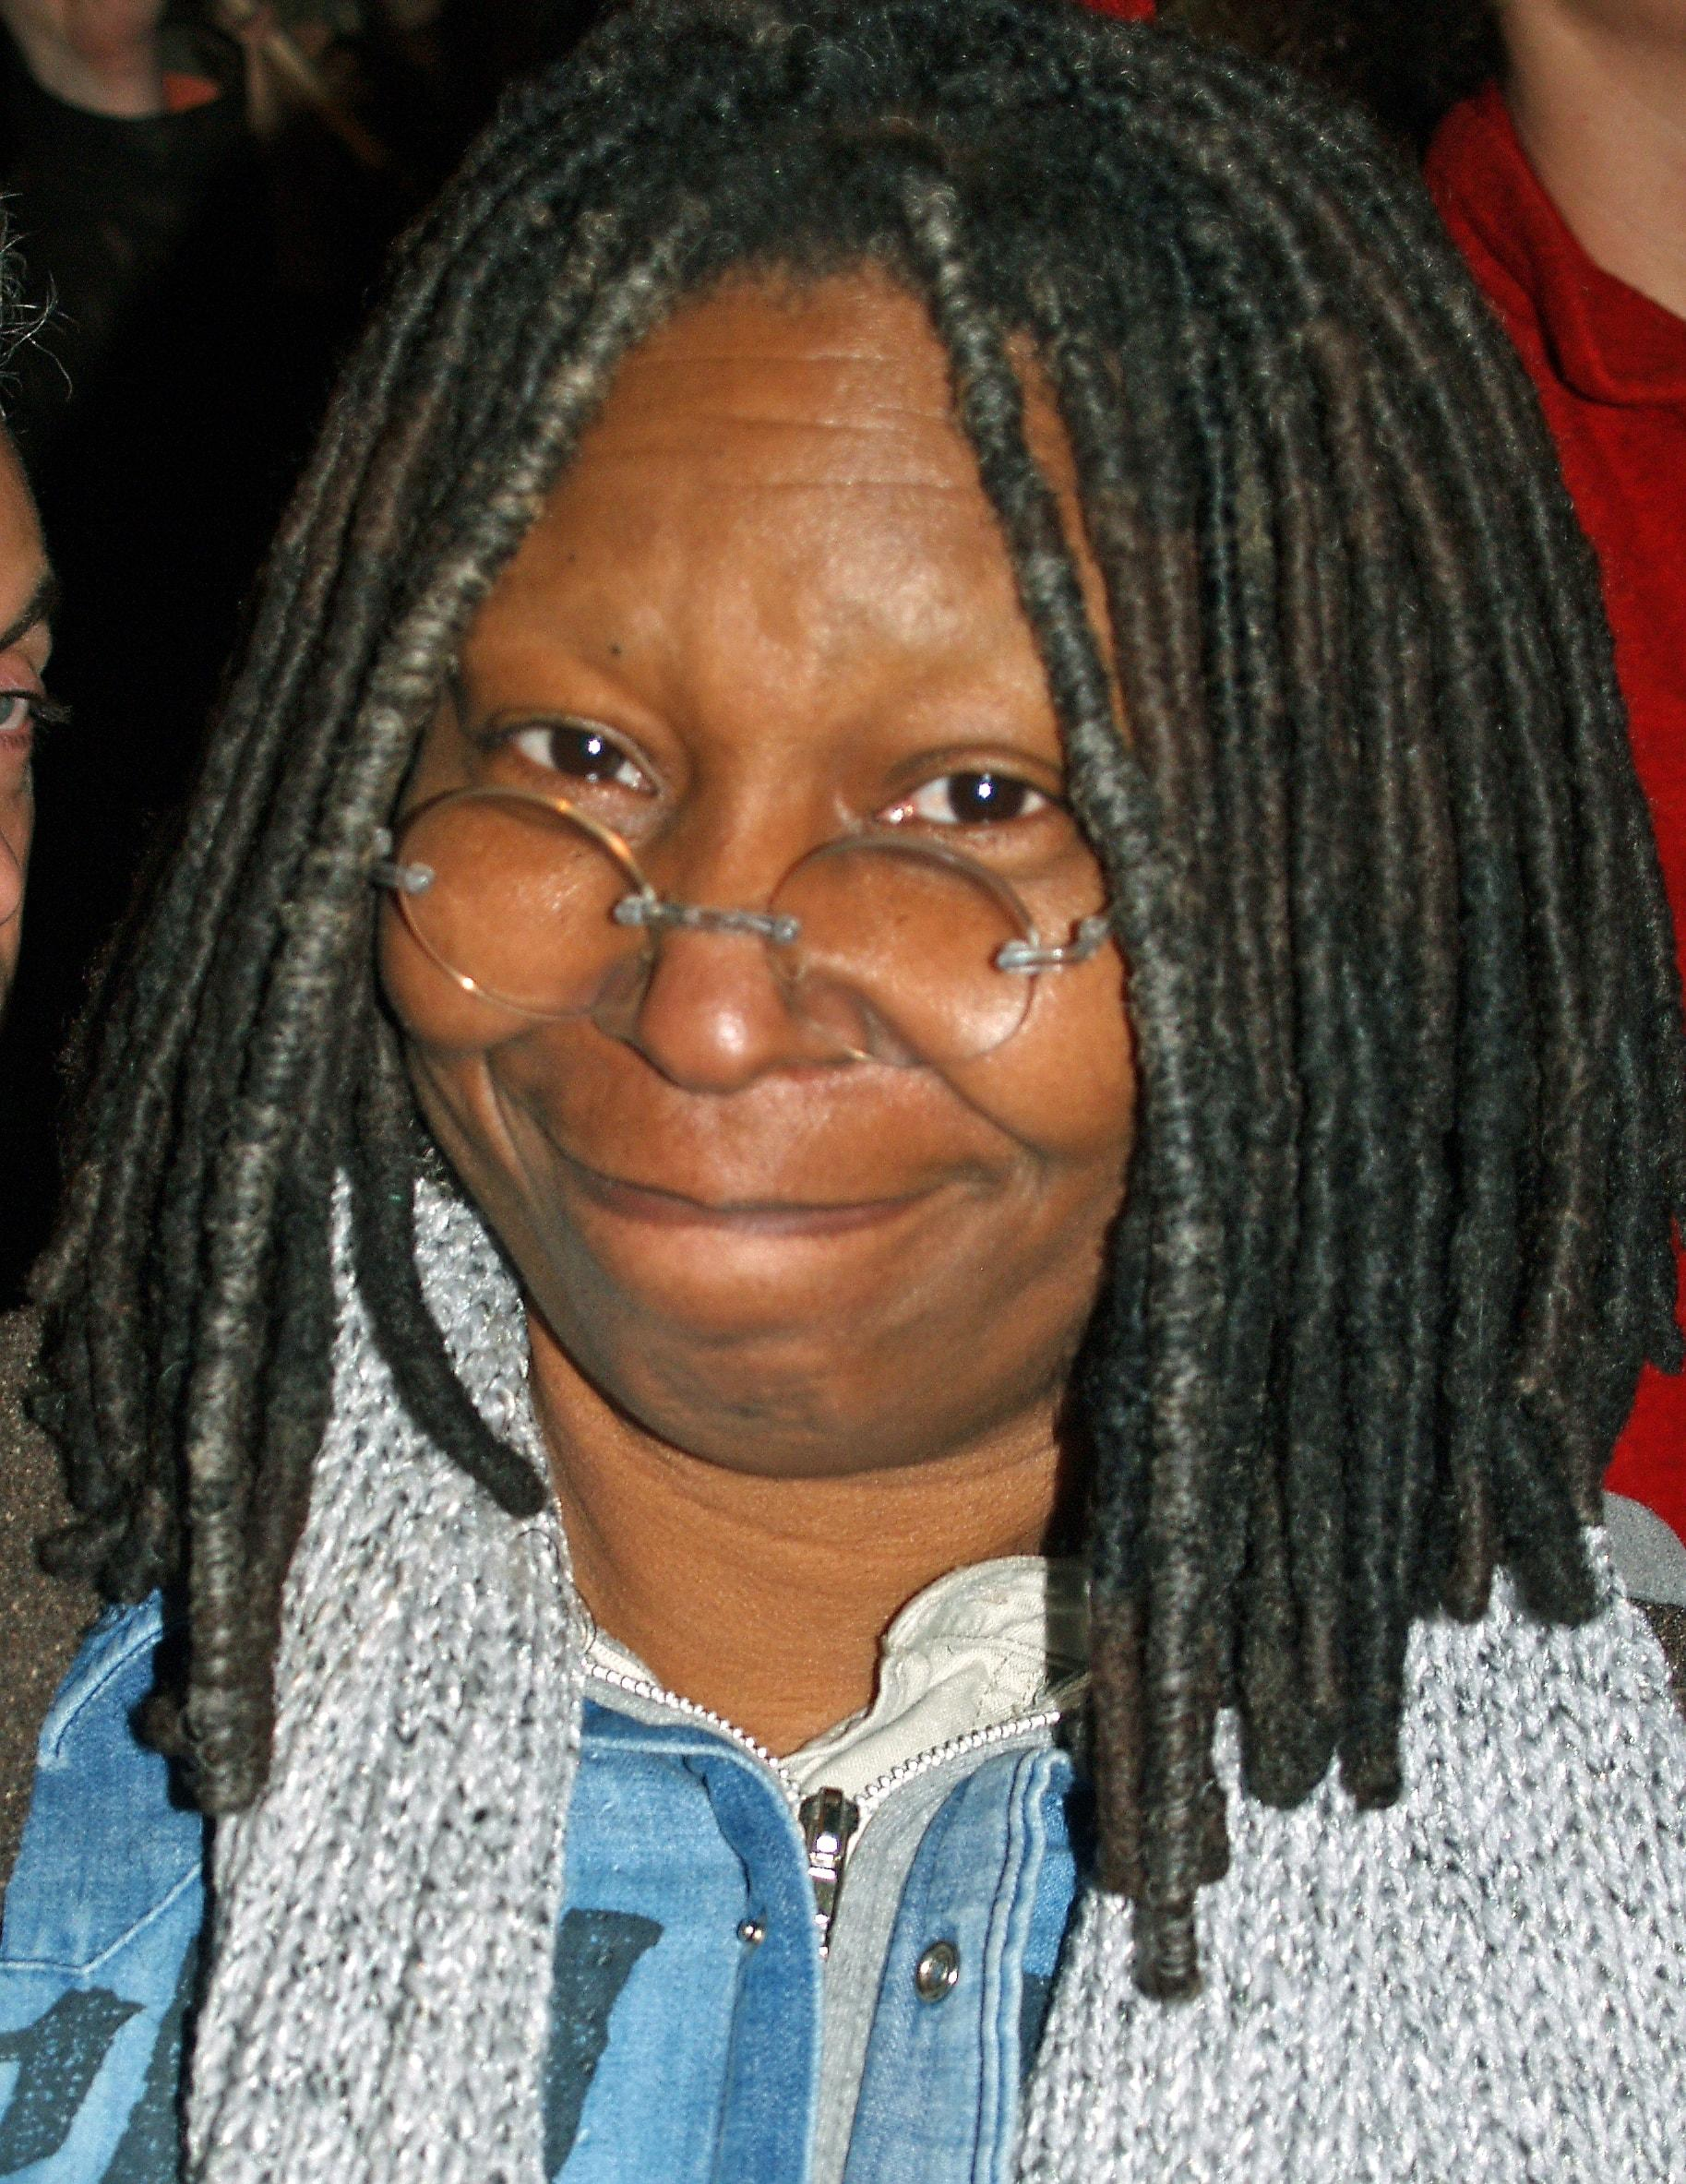 Whoopi Goldberg HD Wallpapers | 7wallpapers.net